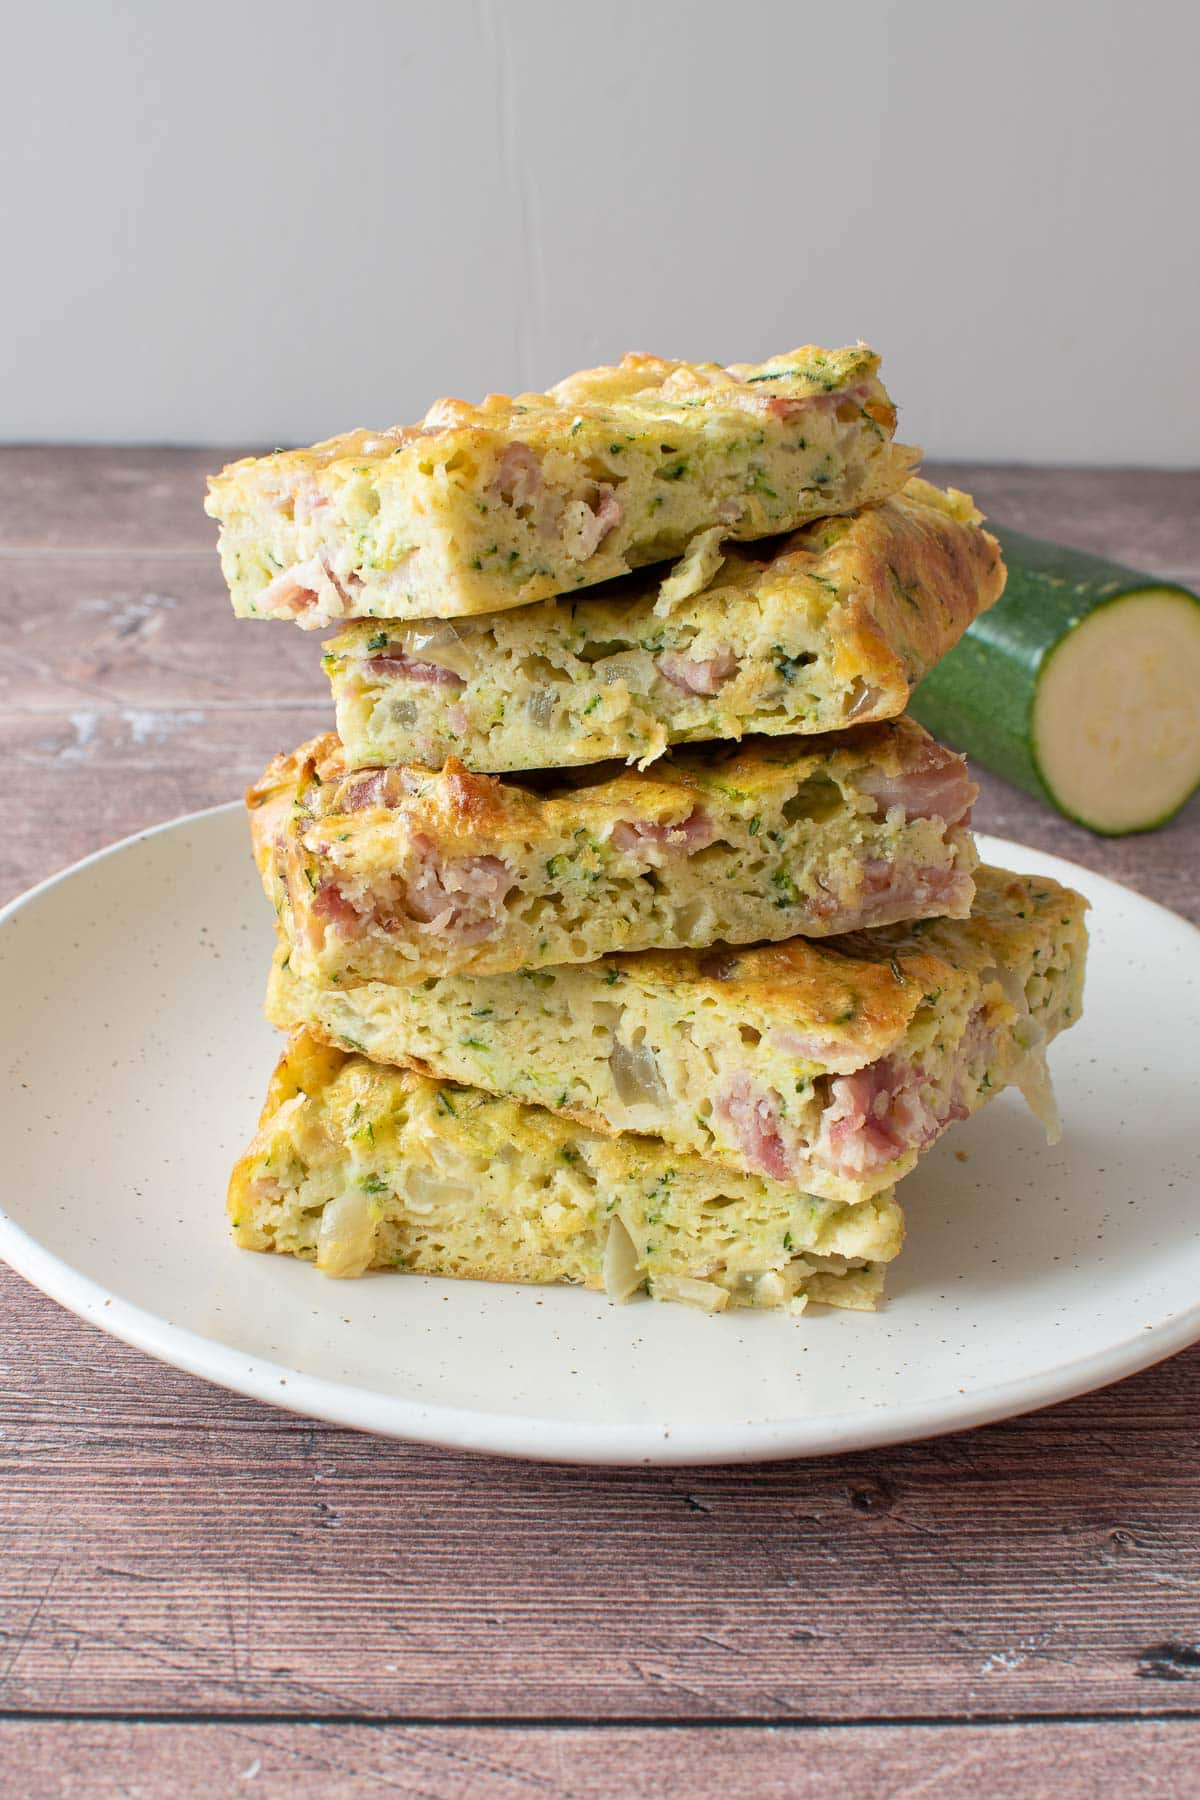 A plate of stacked zucchini slices, with zucchini in the background.